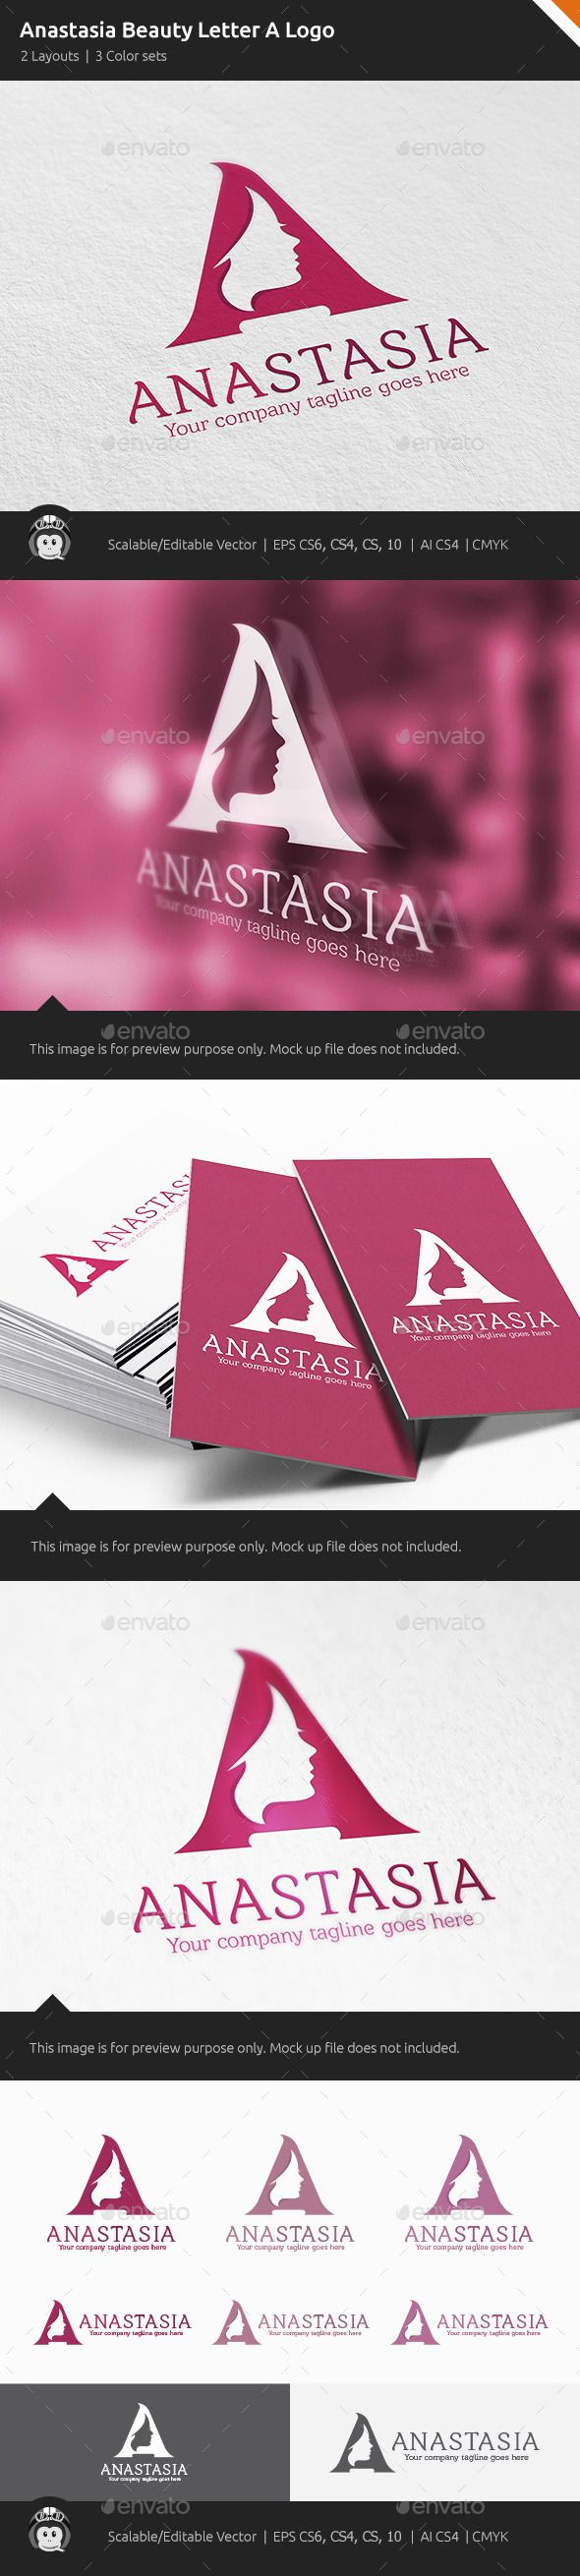 Anastasia Woman Letter A Logo — Vector EPS #wellness #cute • Available here → https://graphicriver.net/item/anastasia-woman-letter-a-logo/10822584?ref=pxcr